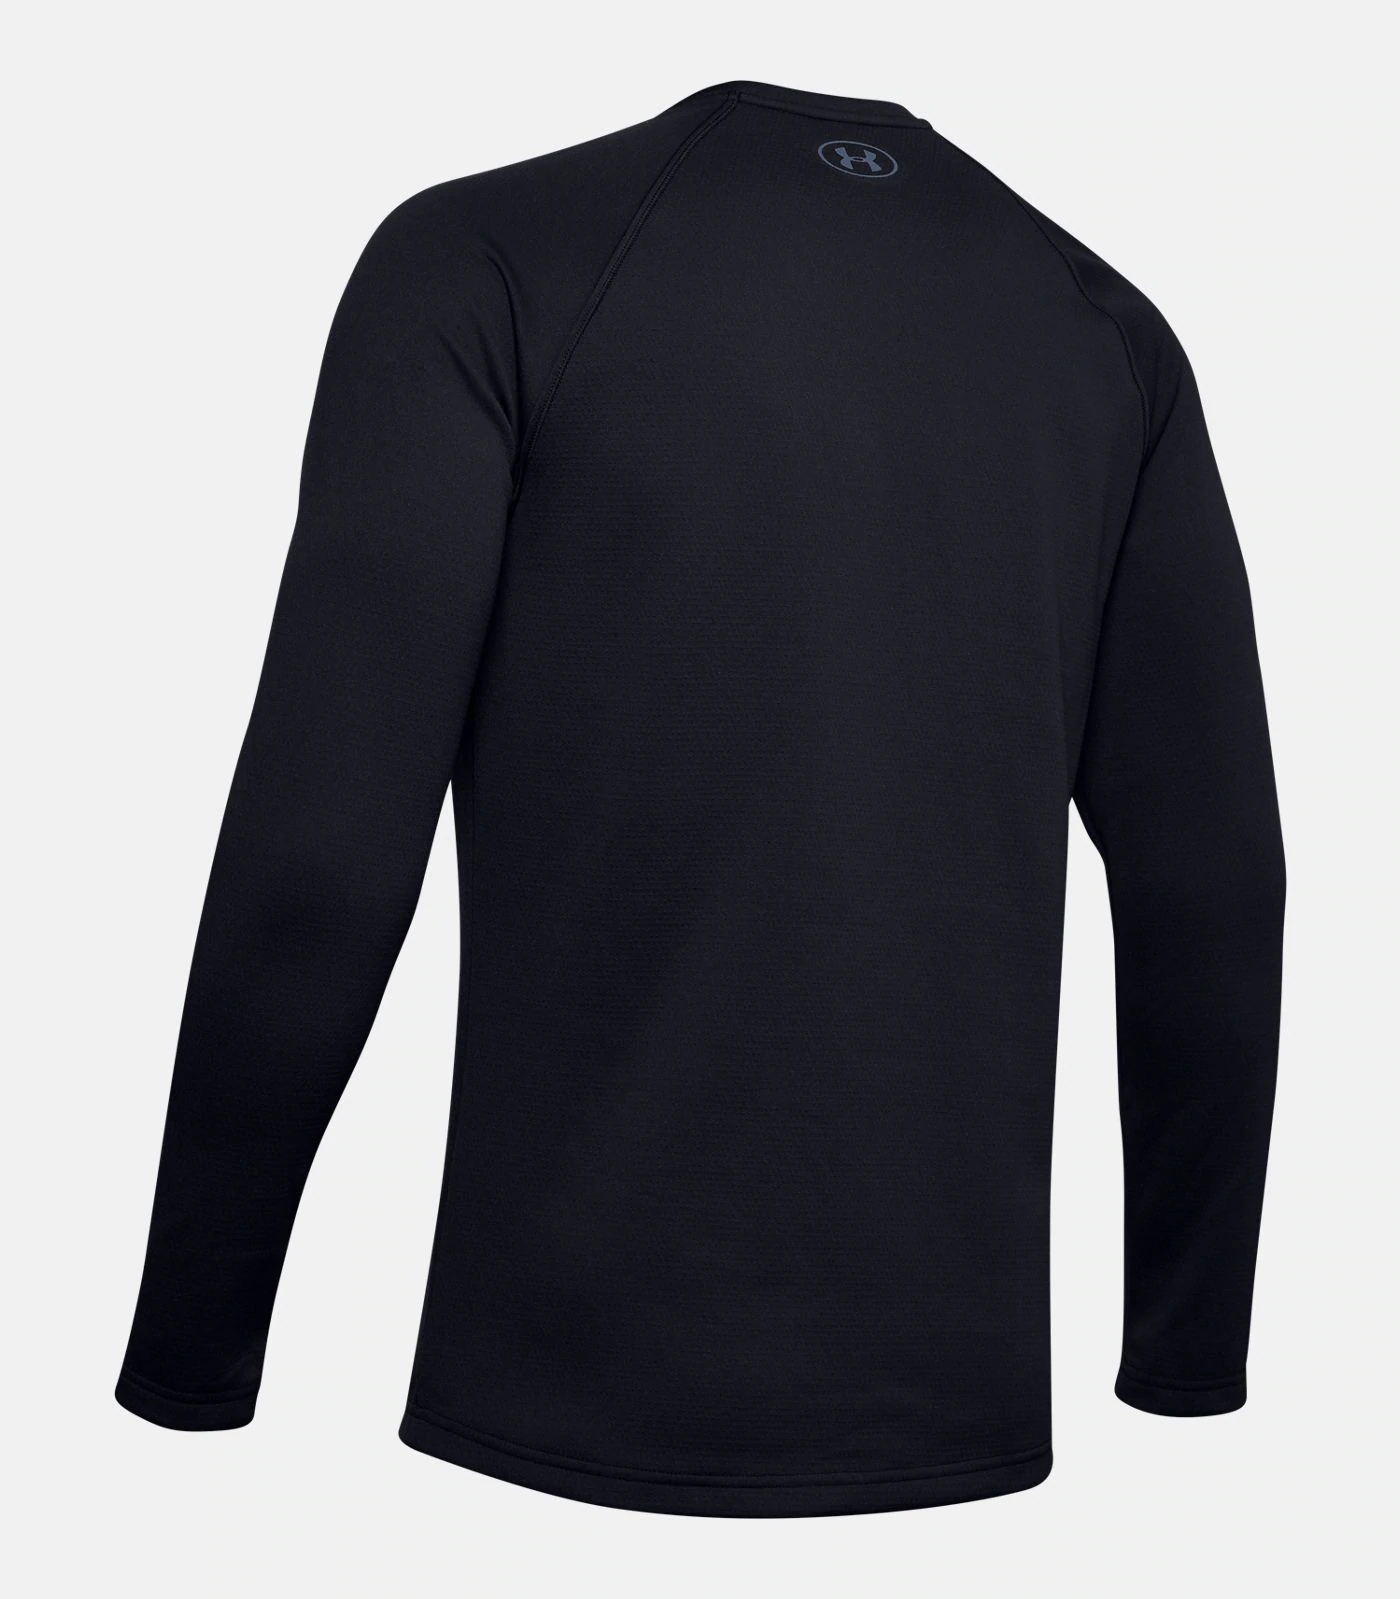 MENS_BASE-LAYERS-4_LS_UAR1353349001_12